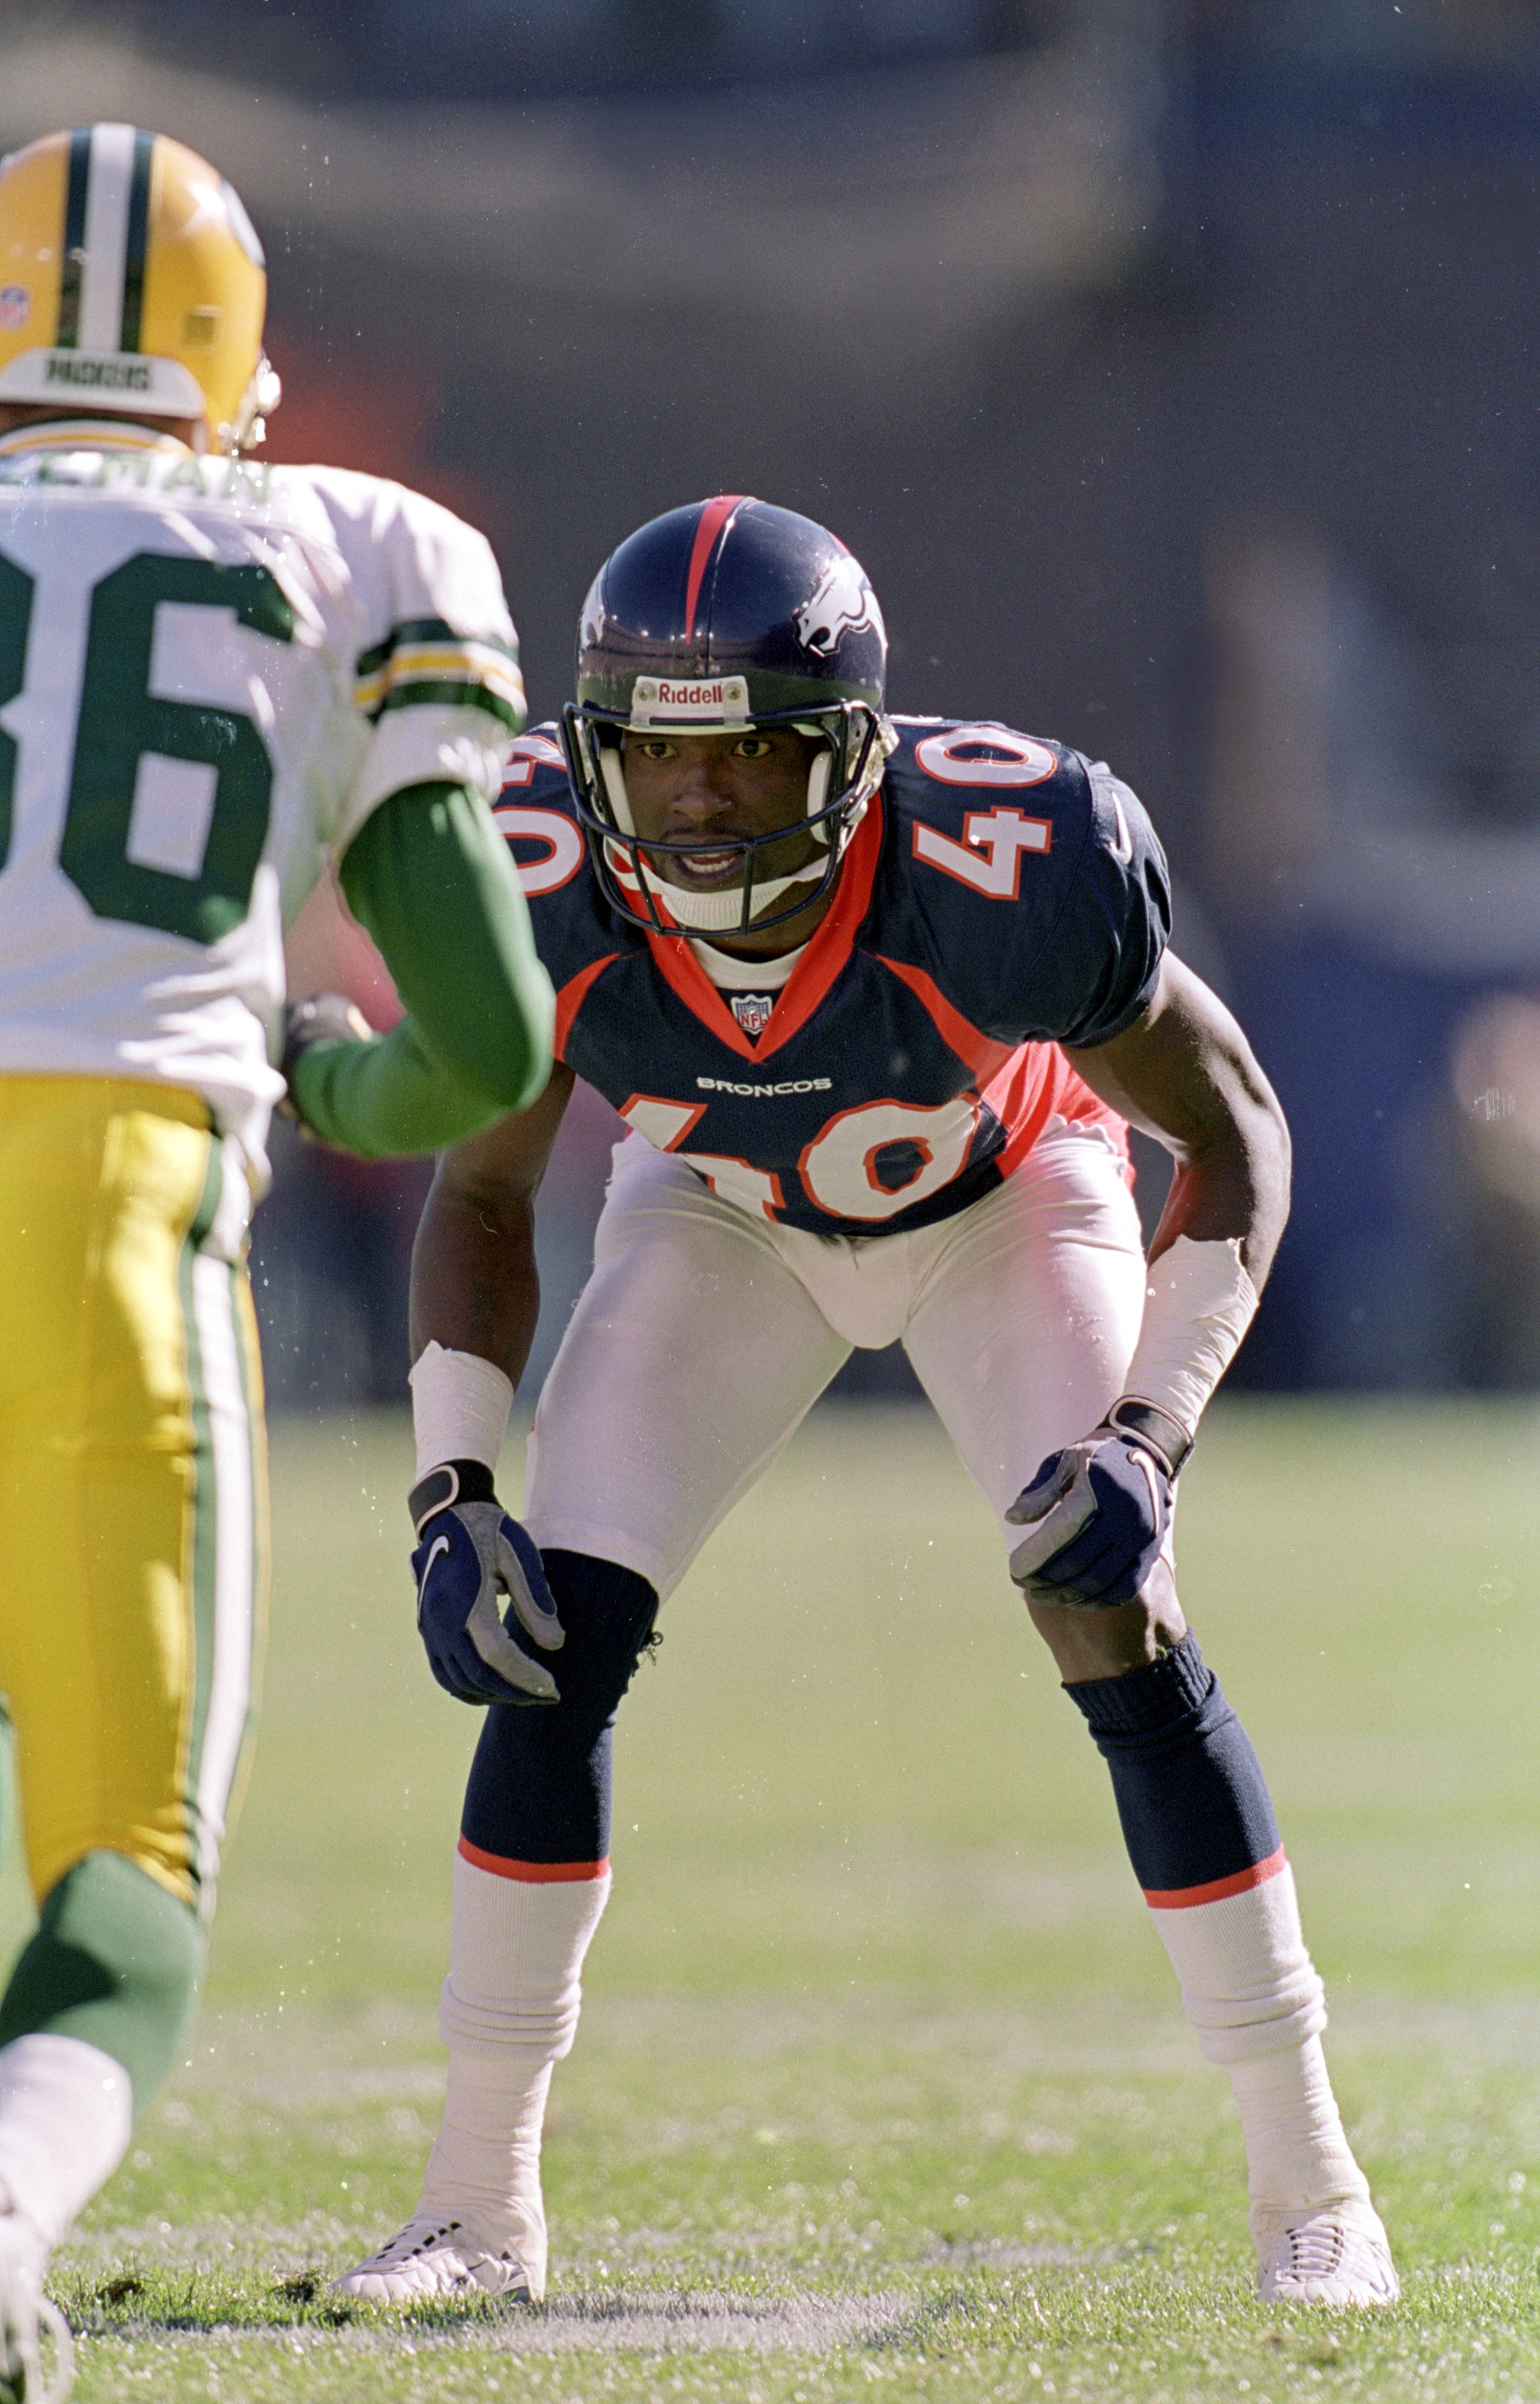 17 Oct 1999: Dale Carter #40 of the Denver Broncos gets ready to move during the game against the Green Bay Packers at the Mile High Stadium in Denver, Colorado. The Broncos defeated the Packers 31-10.